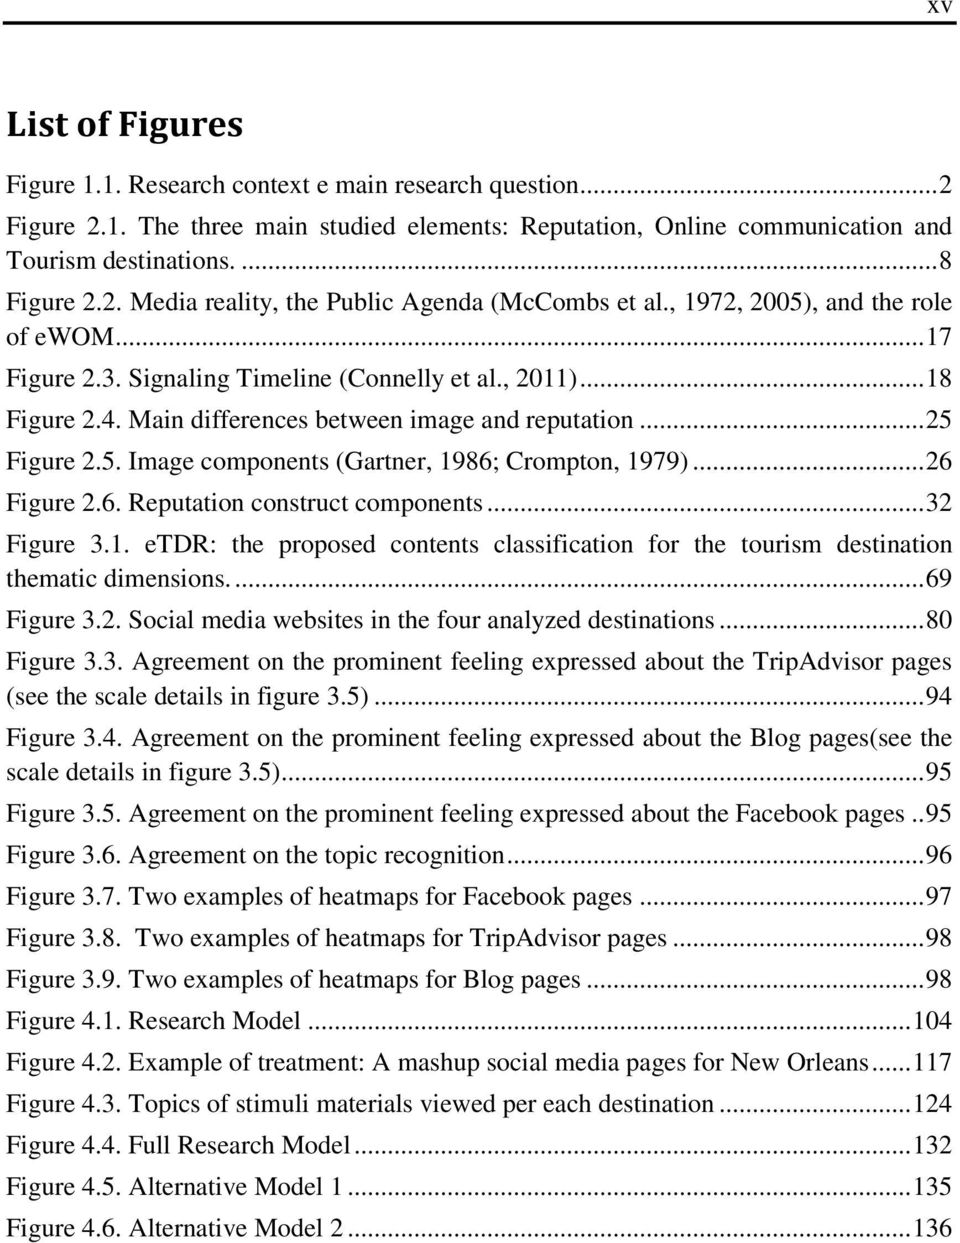 .. 26 Figure 2.6. Reputation construct components... 32 Figure 3.1. etdr: the proposed contents classification for the tourism destination thematic dimensions.... 69 Figure 3.2. Social media websites in the four analyzed destinations.